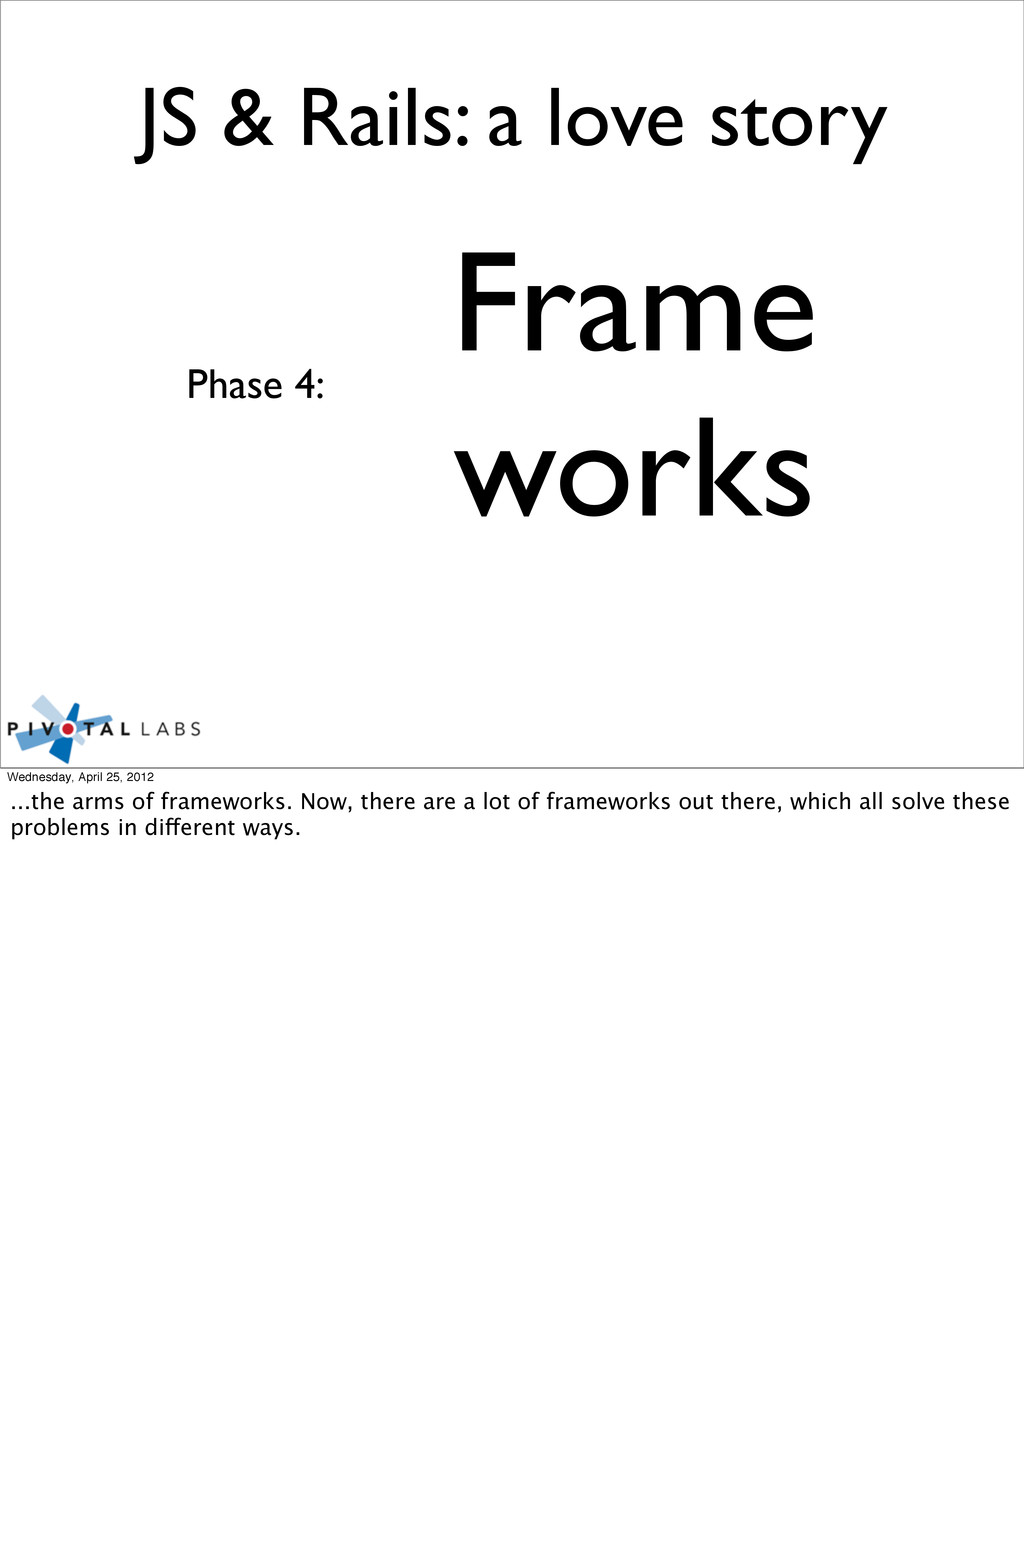 Frame works Phase 4: JS & Rails: a love story W...